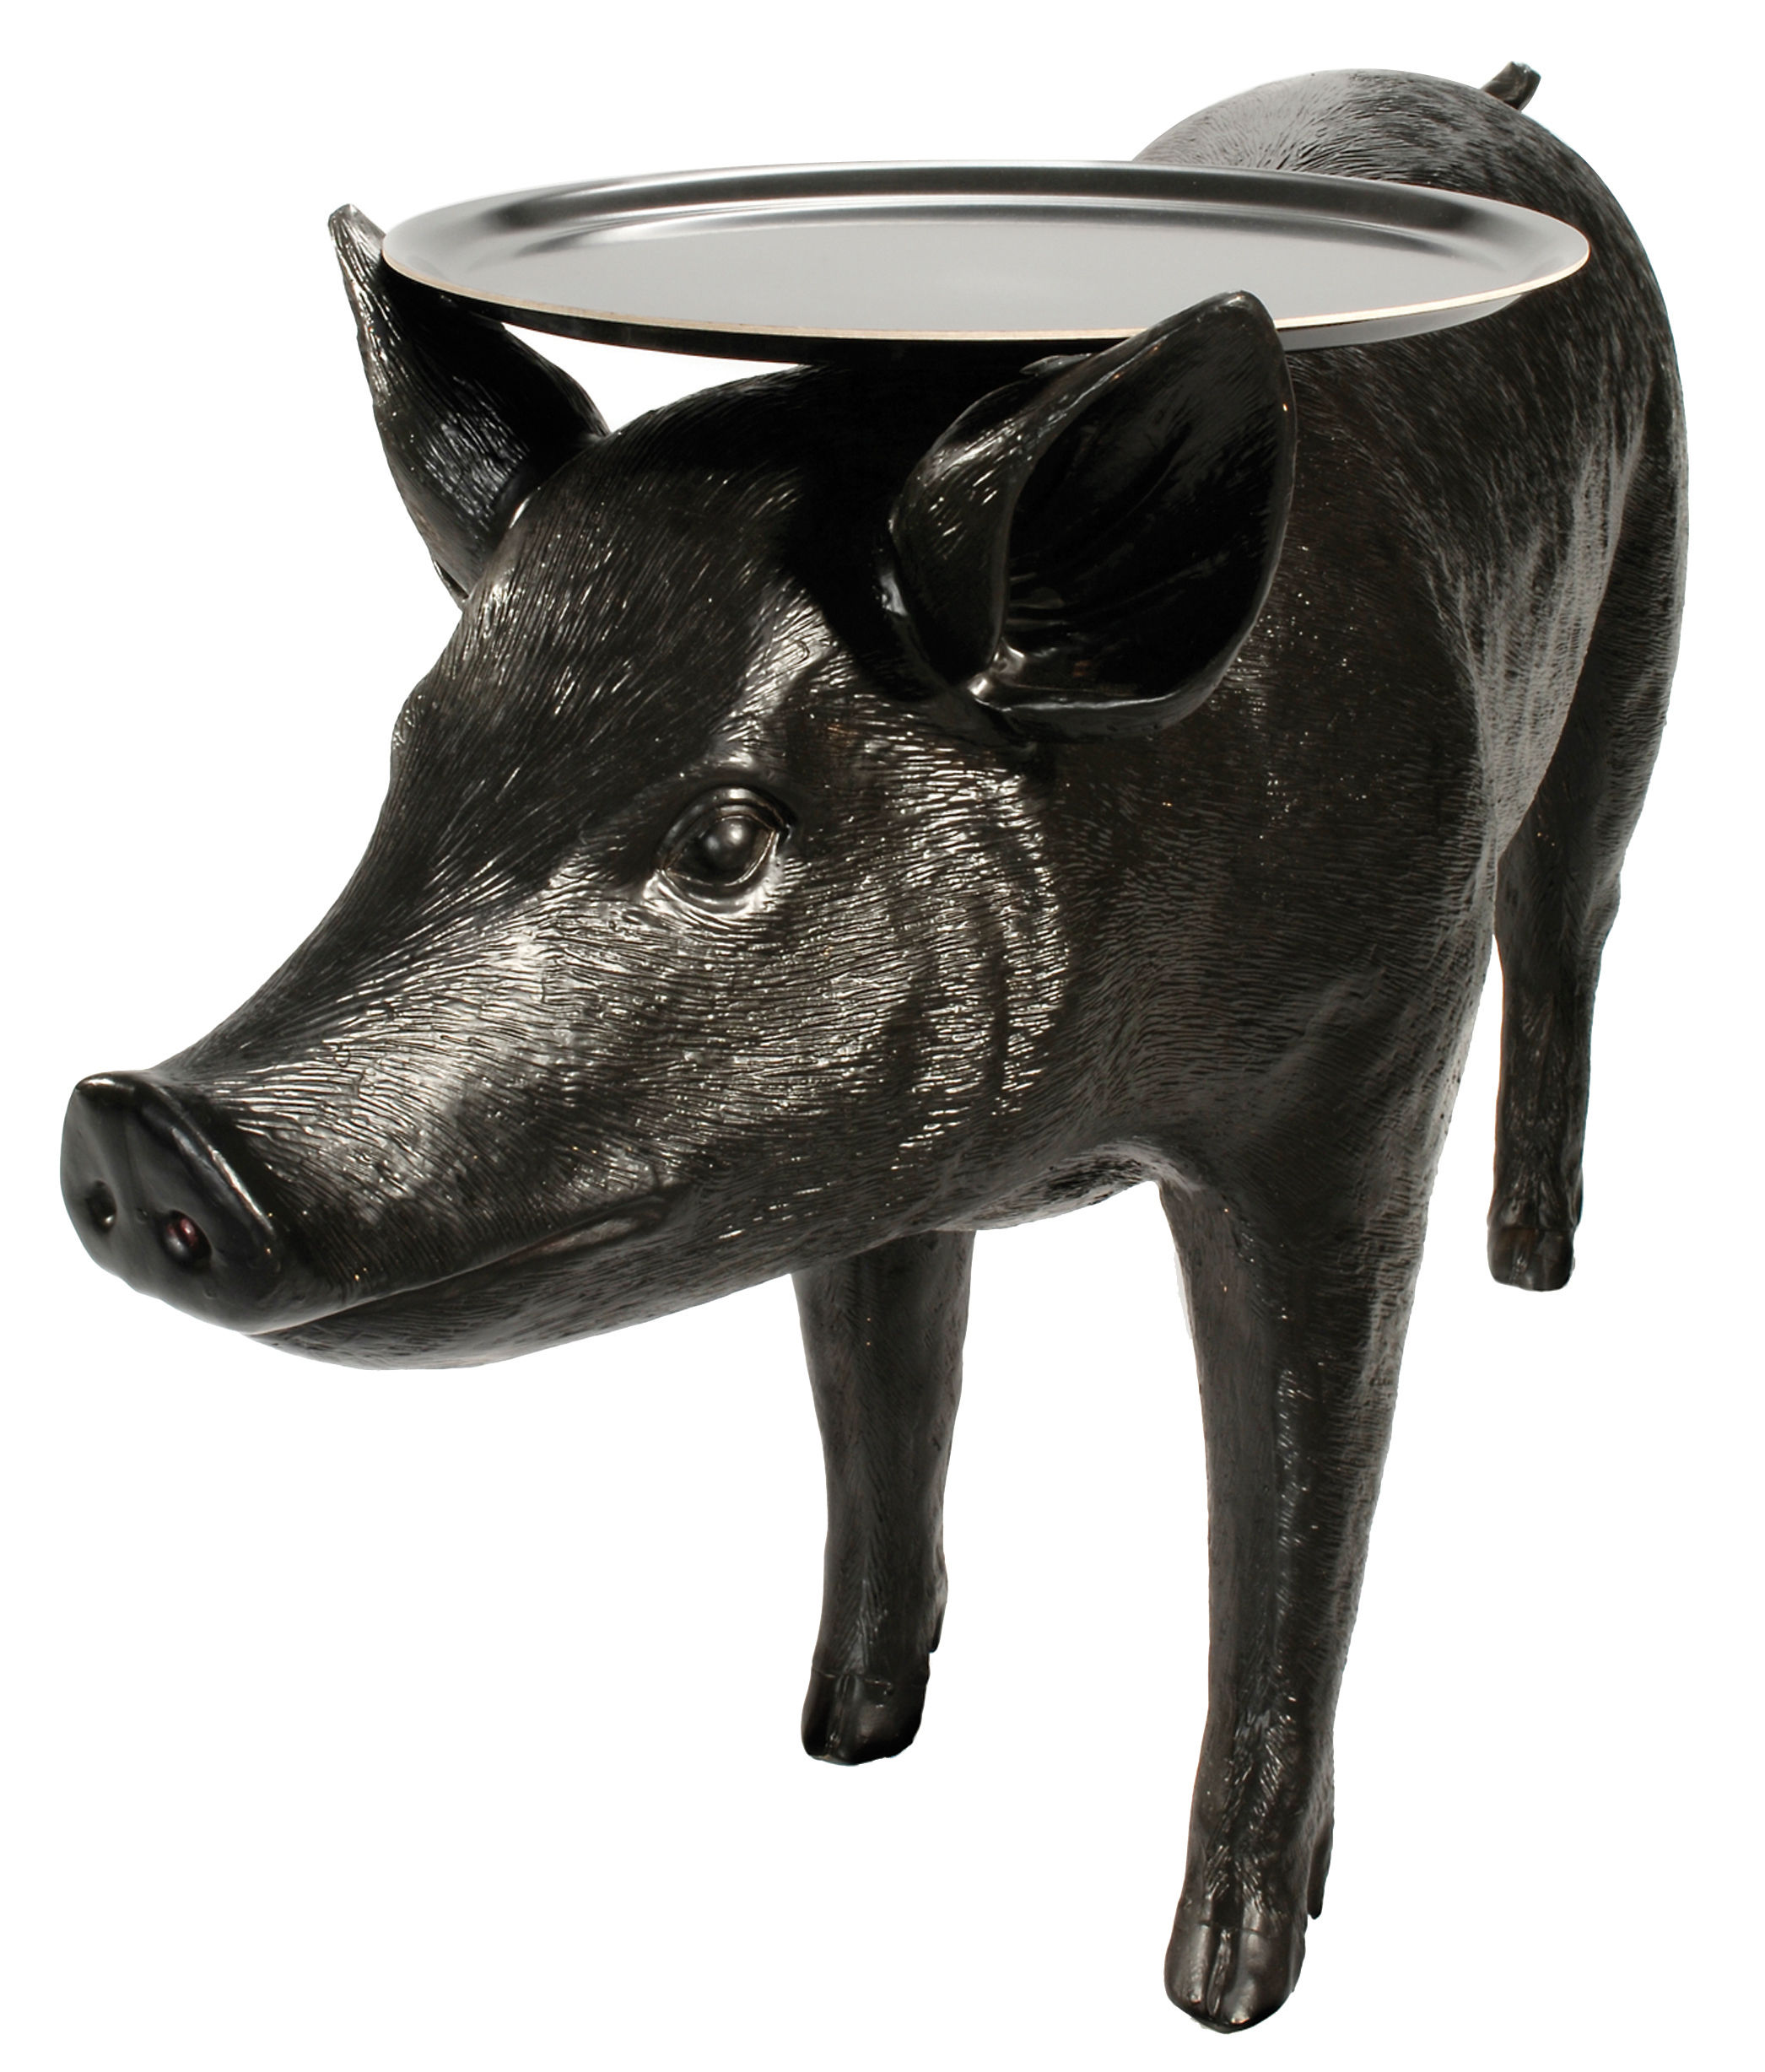 Furniture - Coffee Tables - Pig table Coffee table by Moooi - Black - Polyester